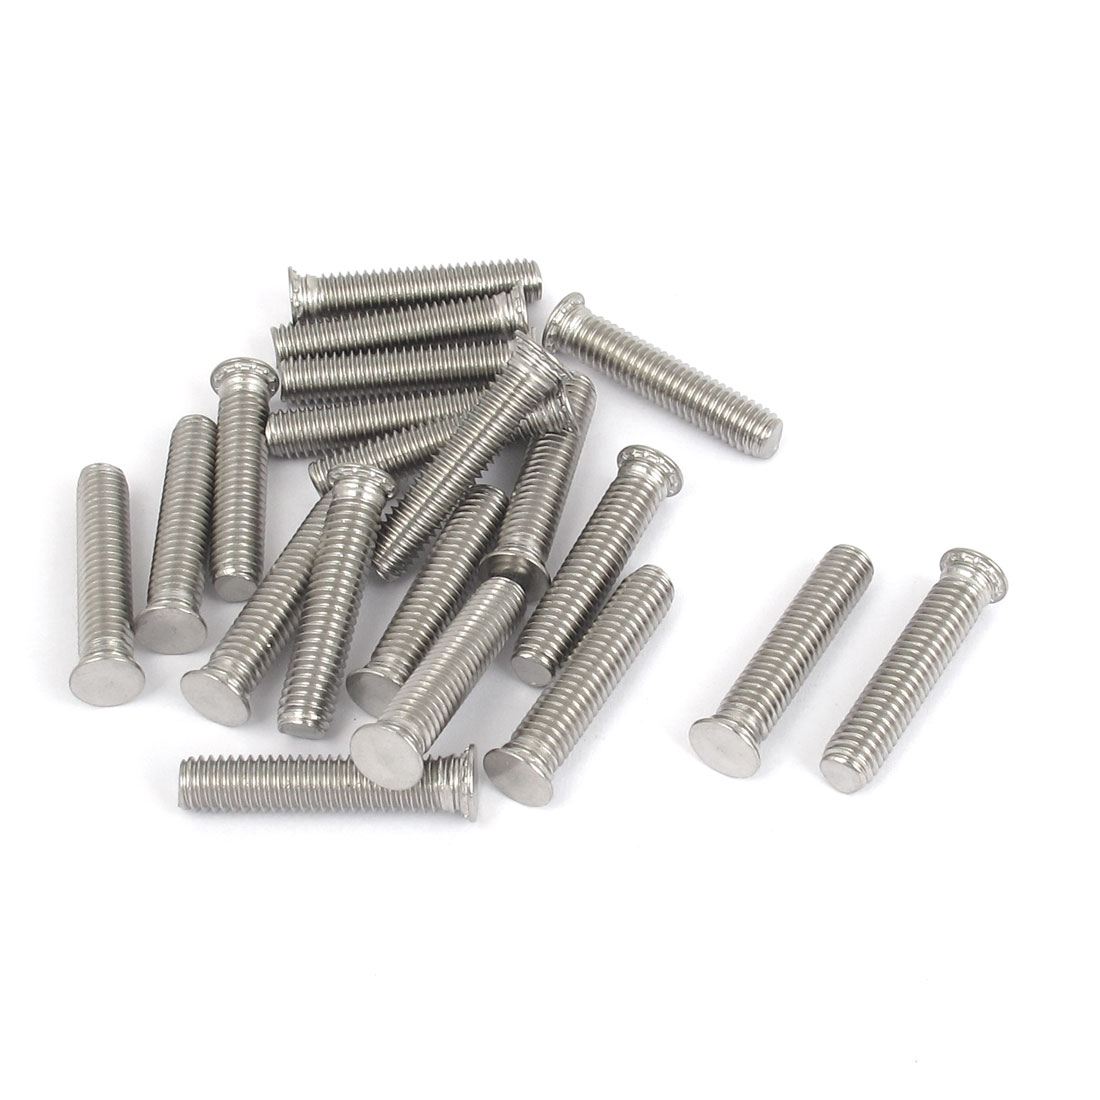 M6x30mm Flush Head Stainless Steel Self Clinching Threaded Studs Fastener 20pcs